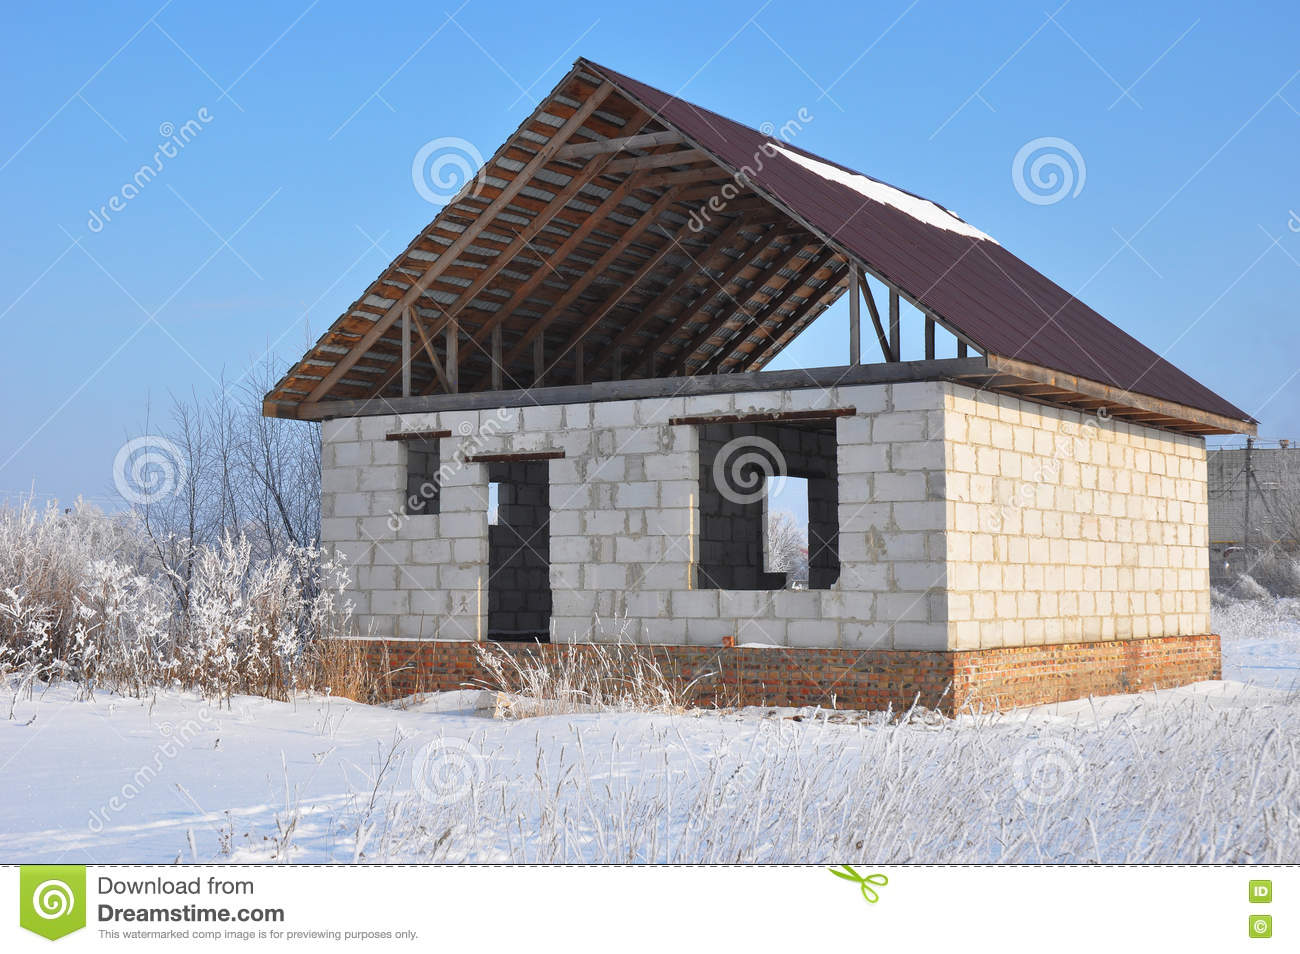 Roofing construction brick house work outdoor stock photo for Brick house construction